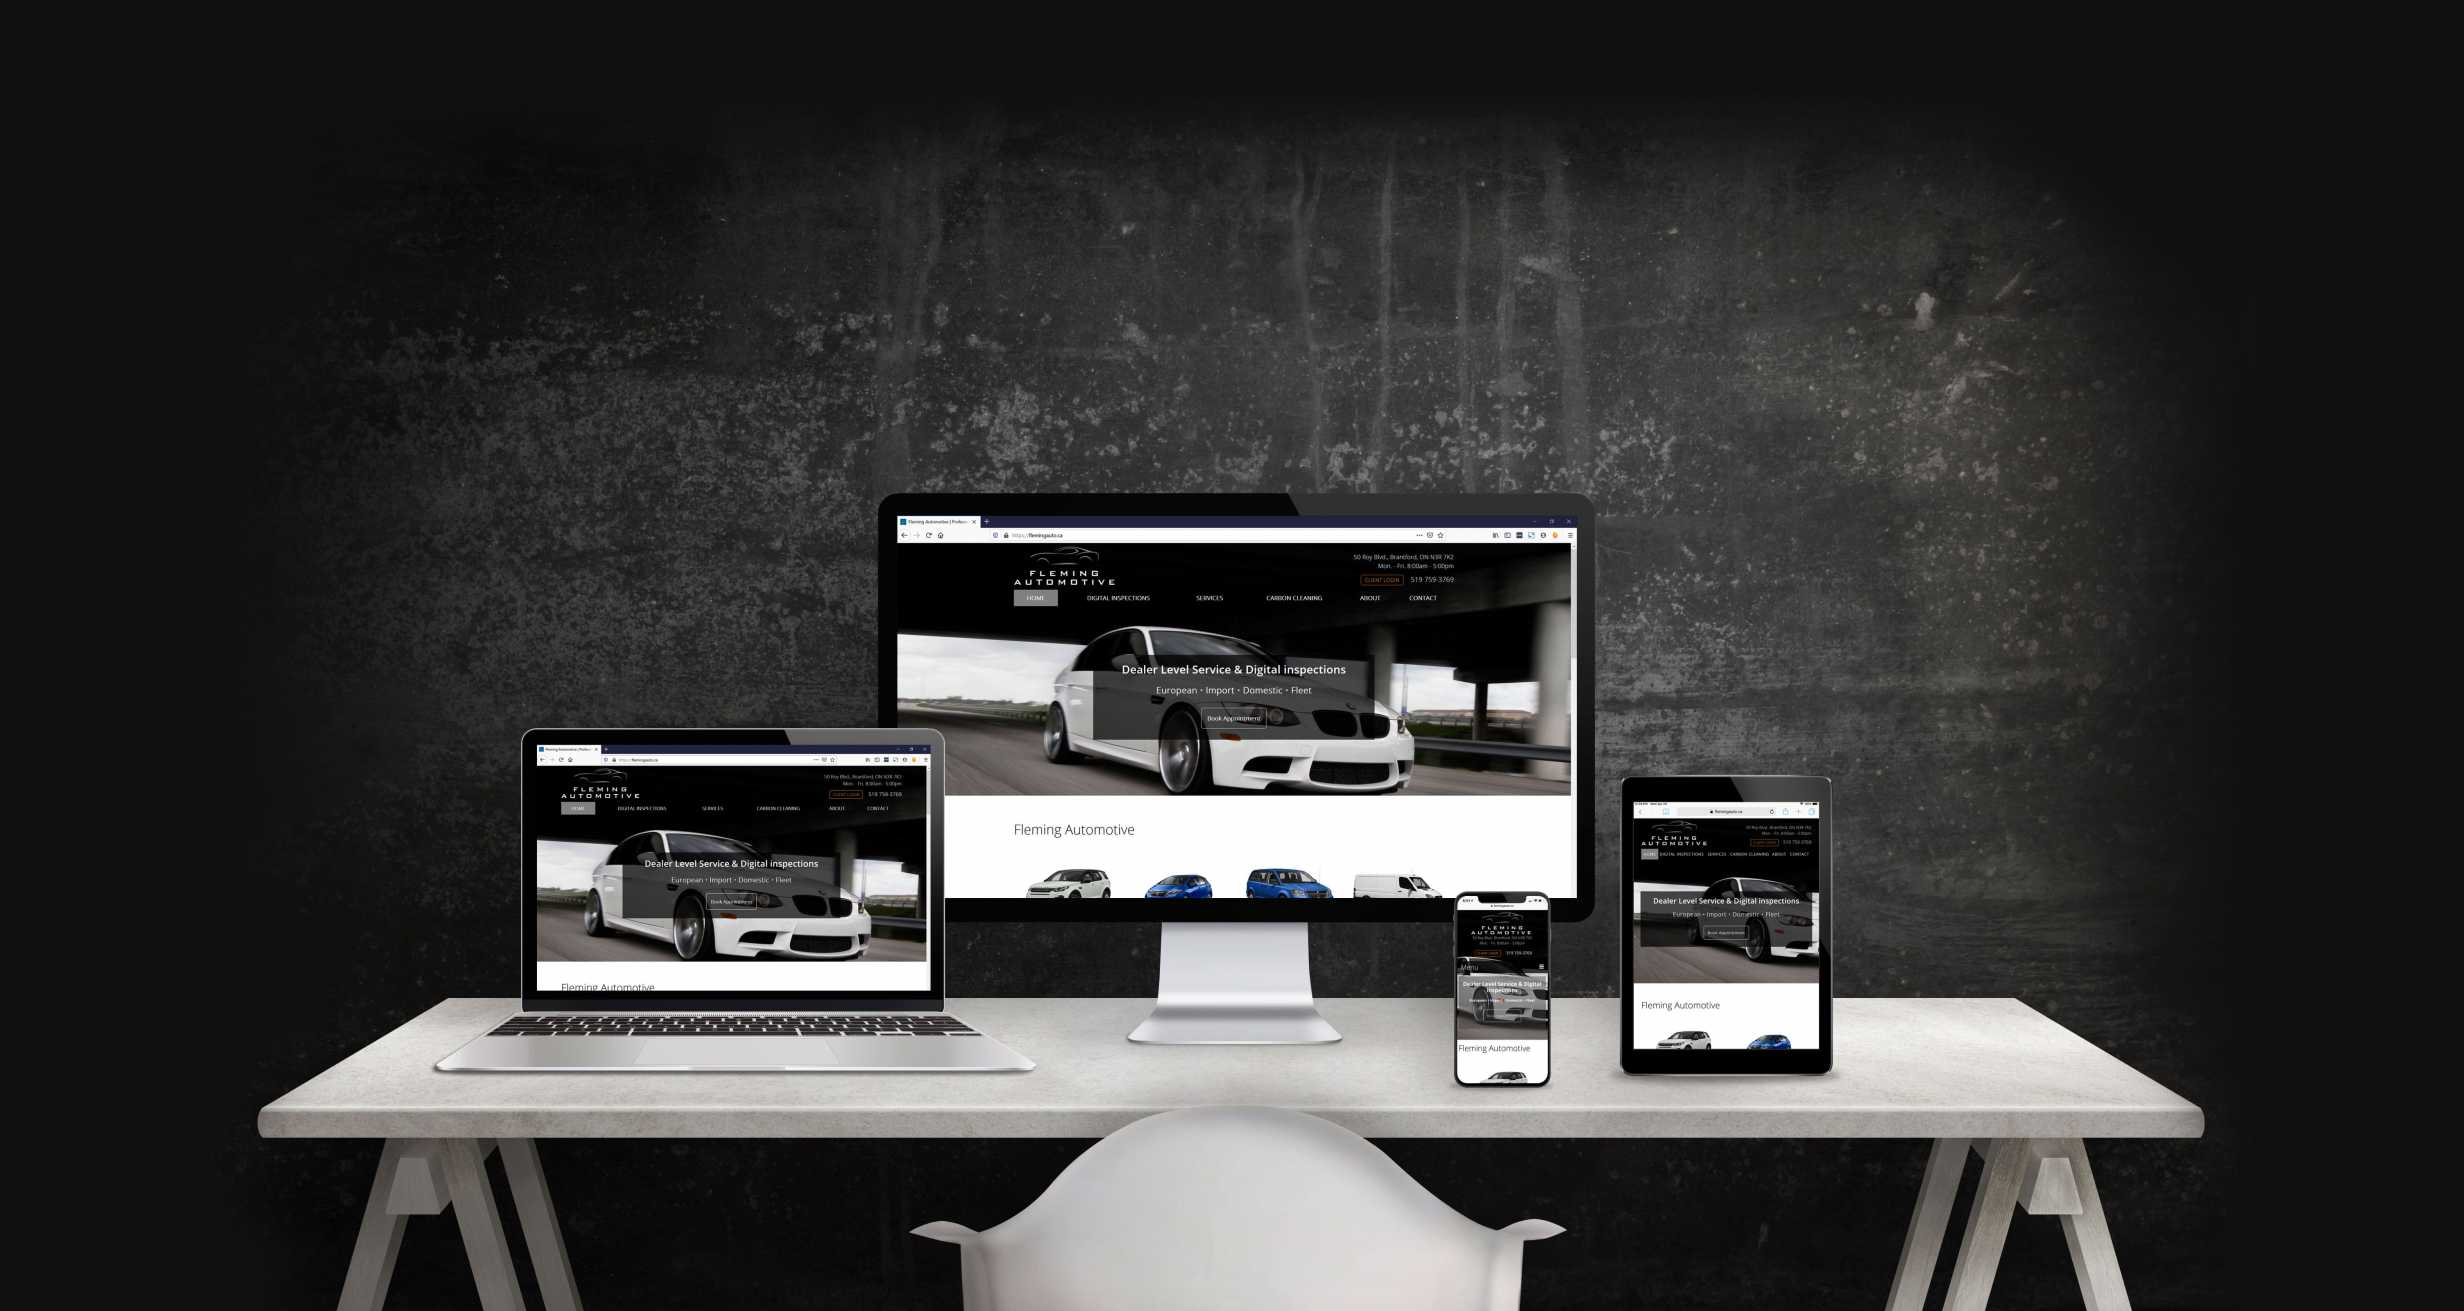 Mockup of the Fleming Automotive website showing desktop, laptop, iPad, and iPhone web layout.